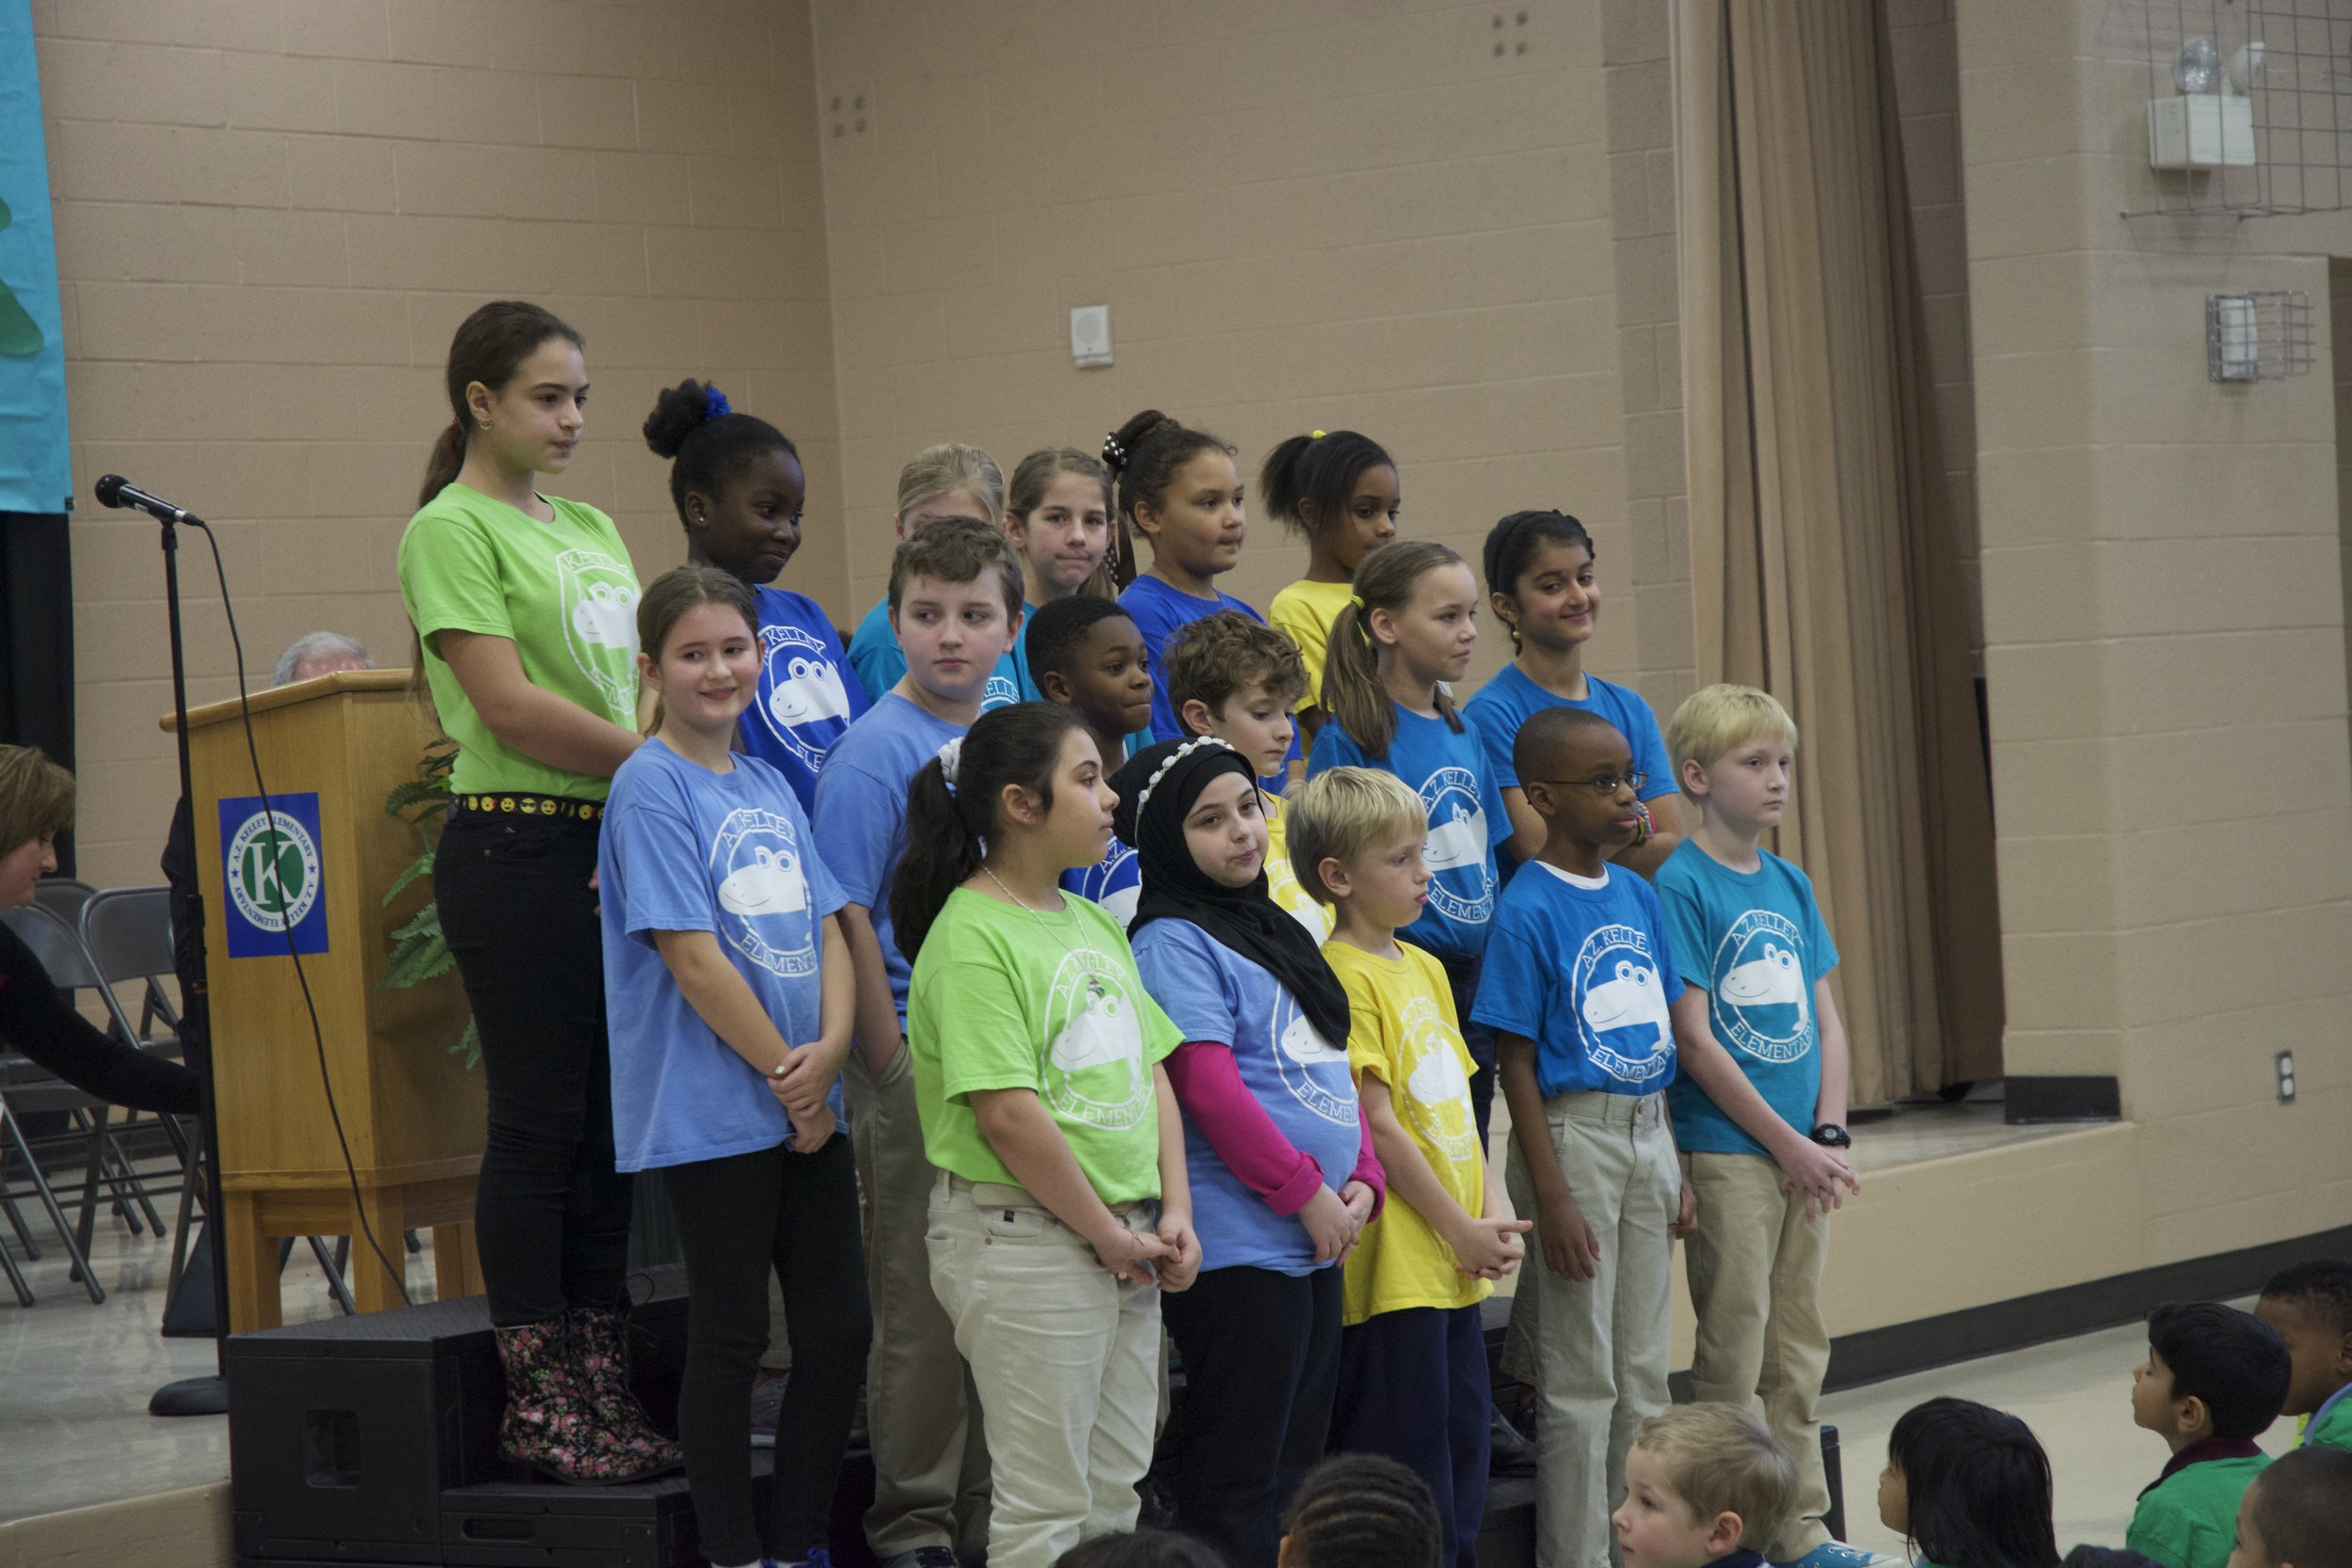 4thgradechoir